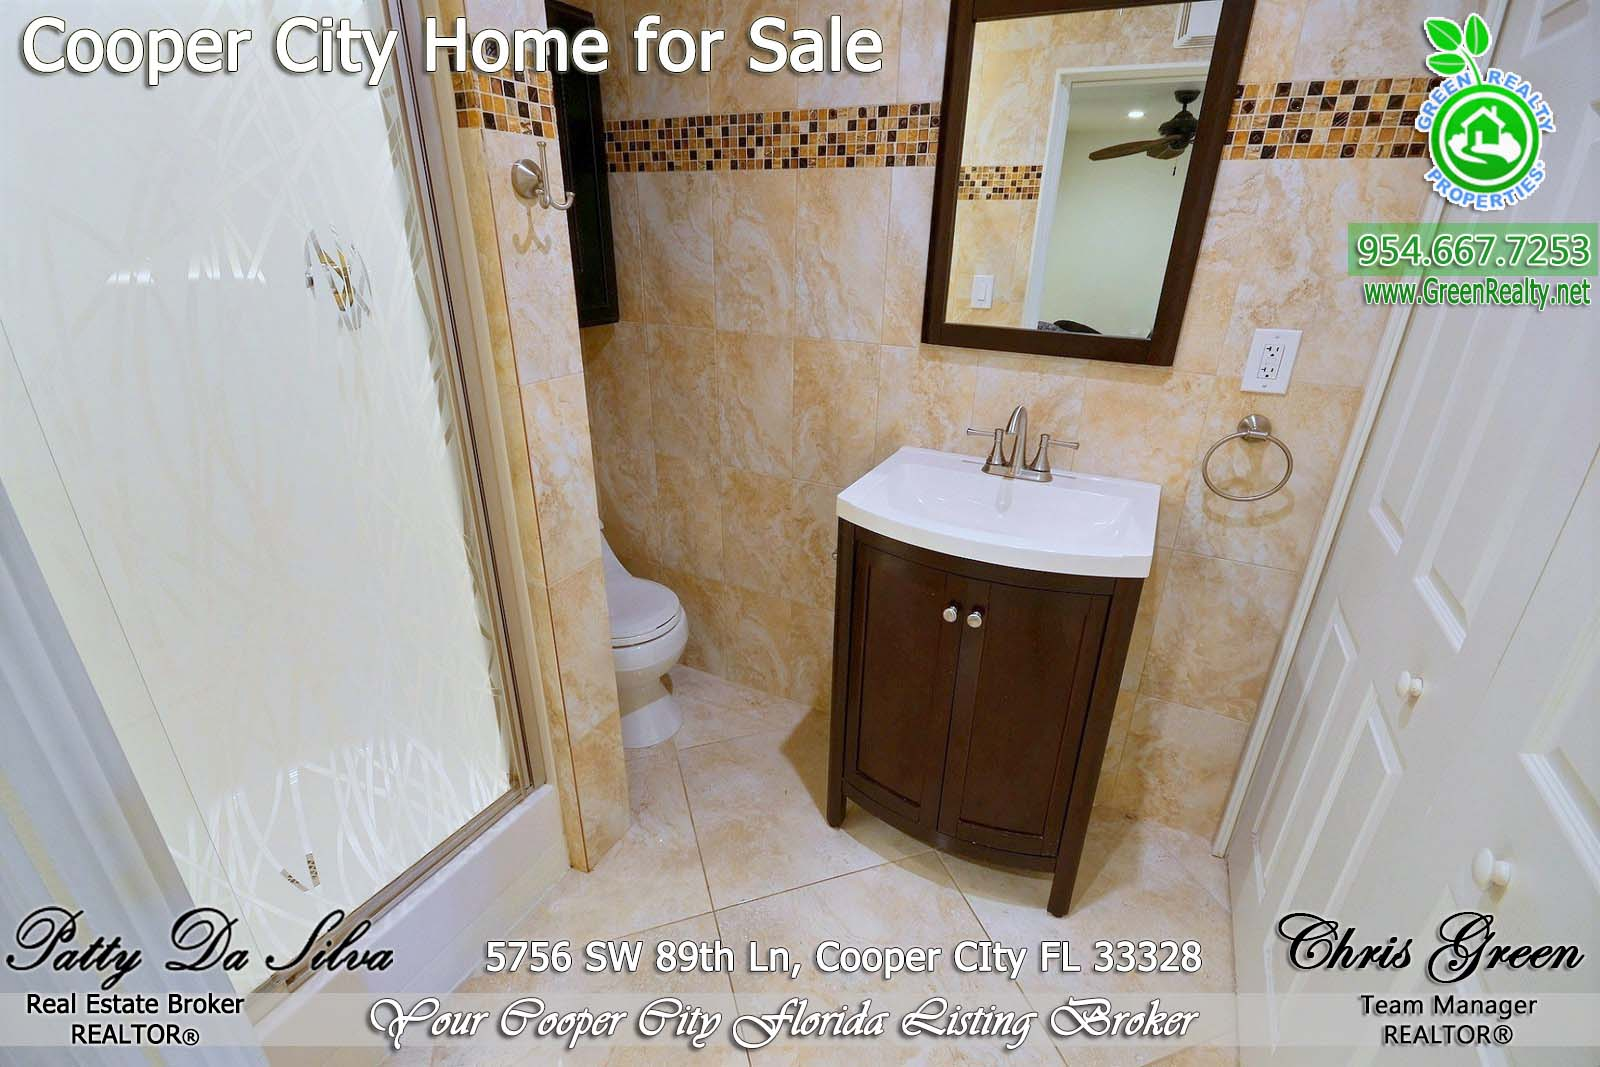 Coopers Pointe - Cooper City Florida Homes For Sale (50)